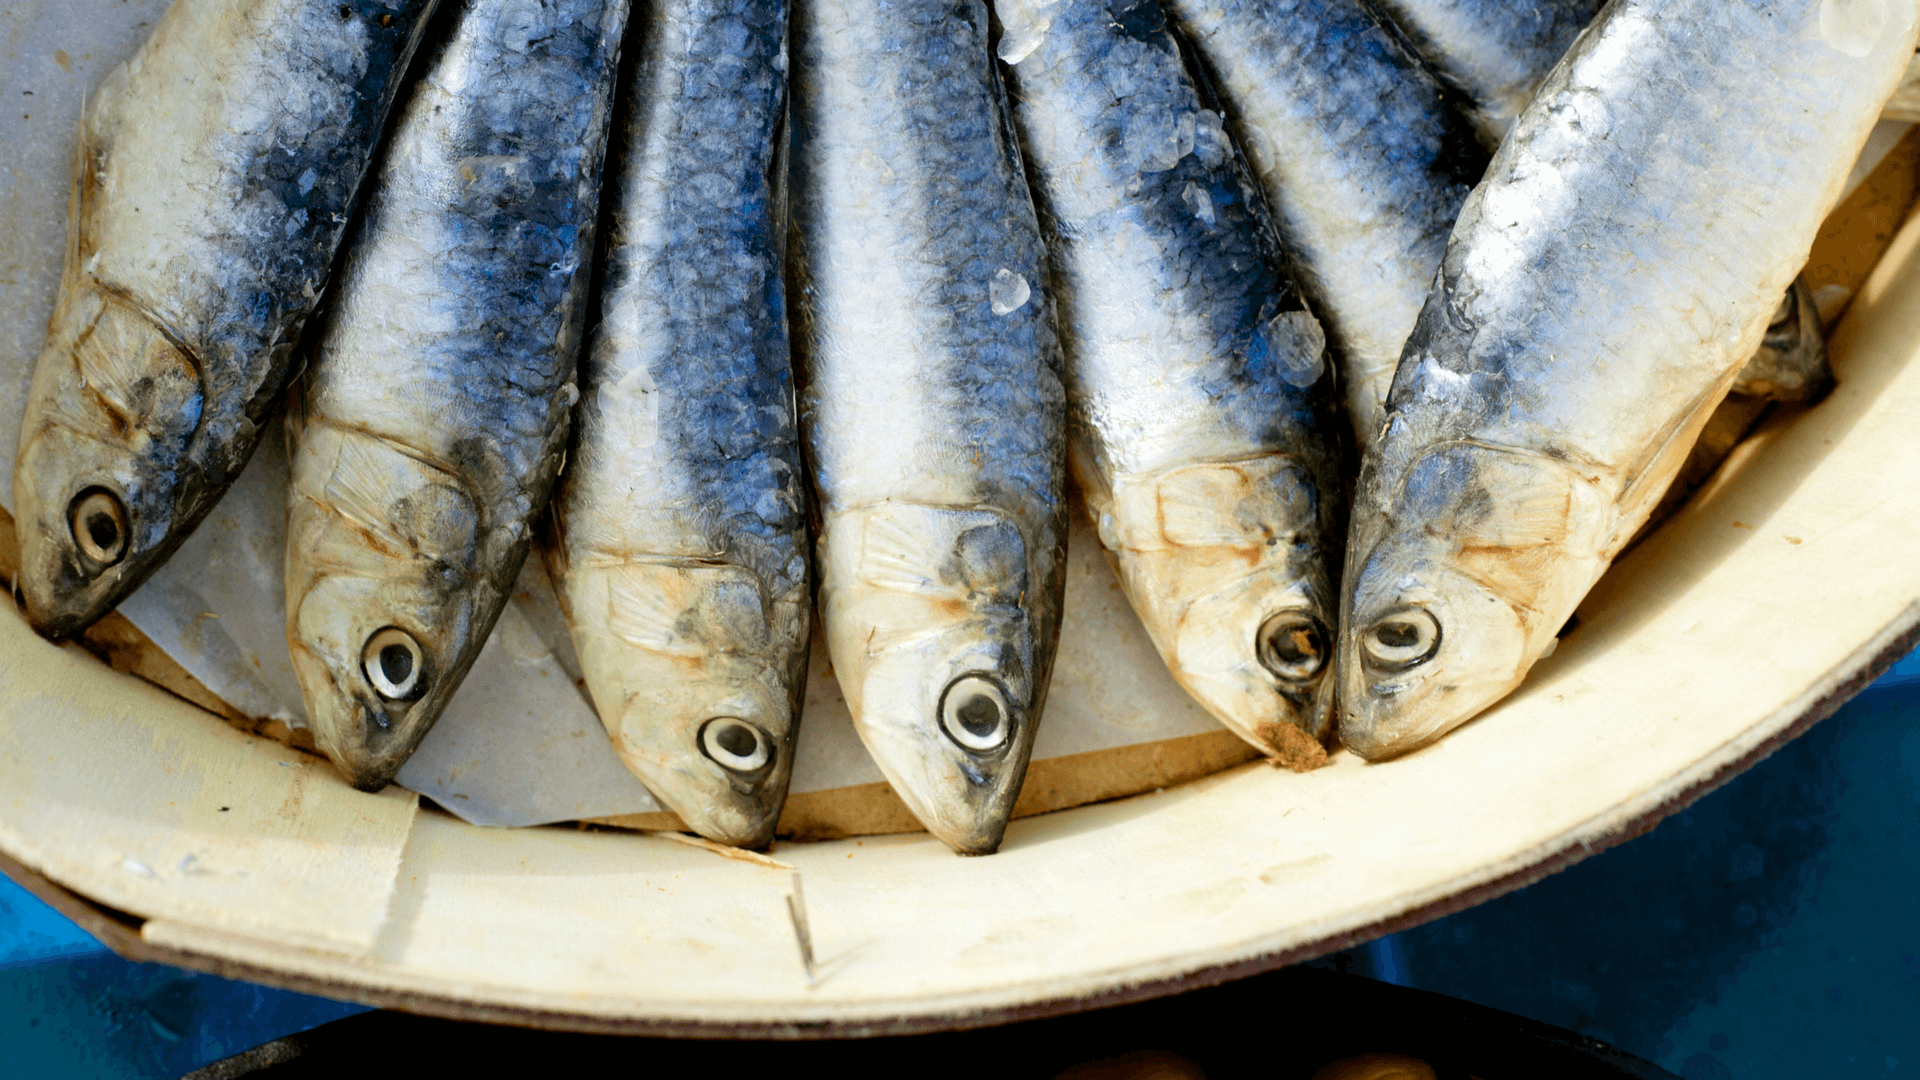 Sardines - Morocco Food Guide: Delicious foods you need to try while visiting Morocco